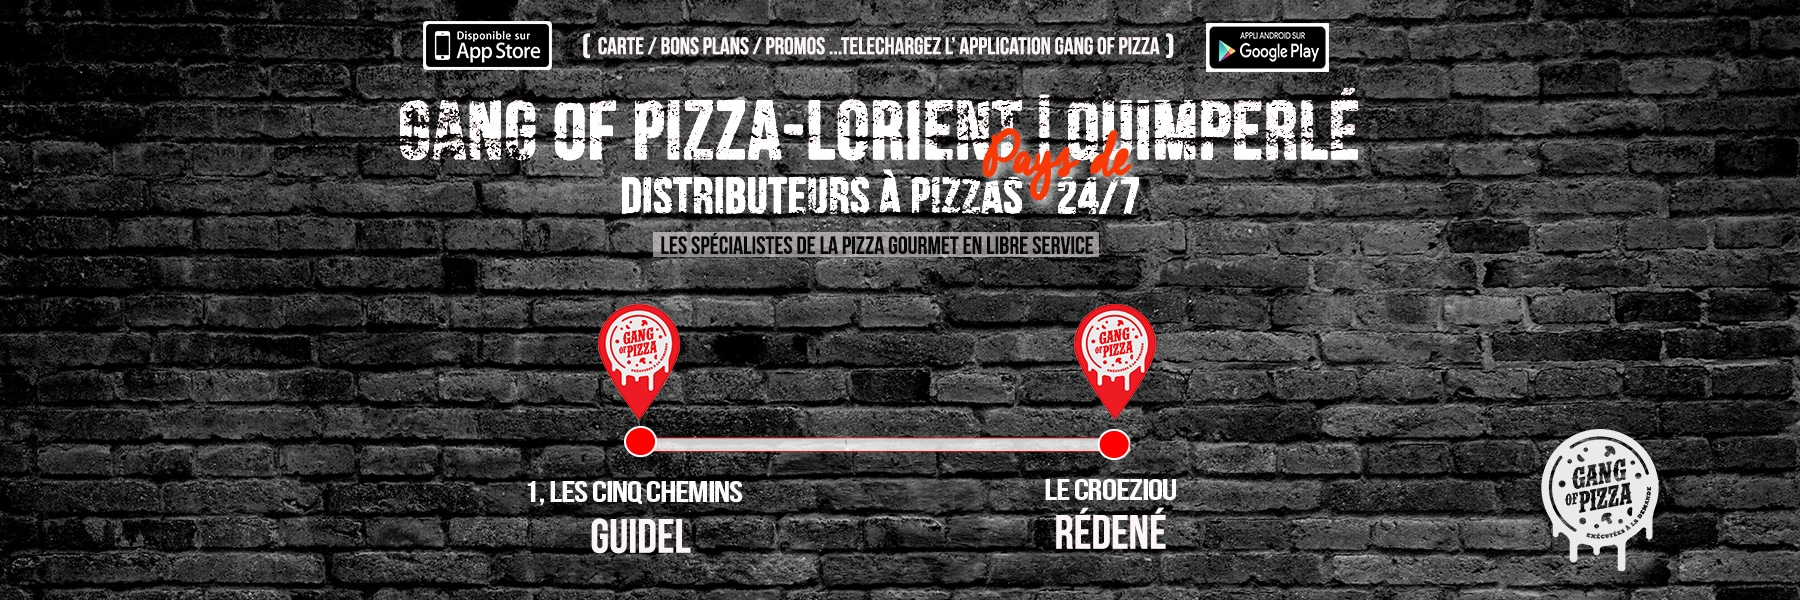 Gang Of Pizza Rédéné Guidel